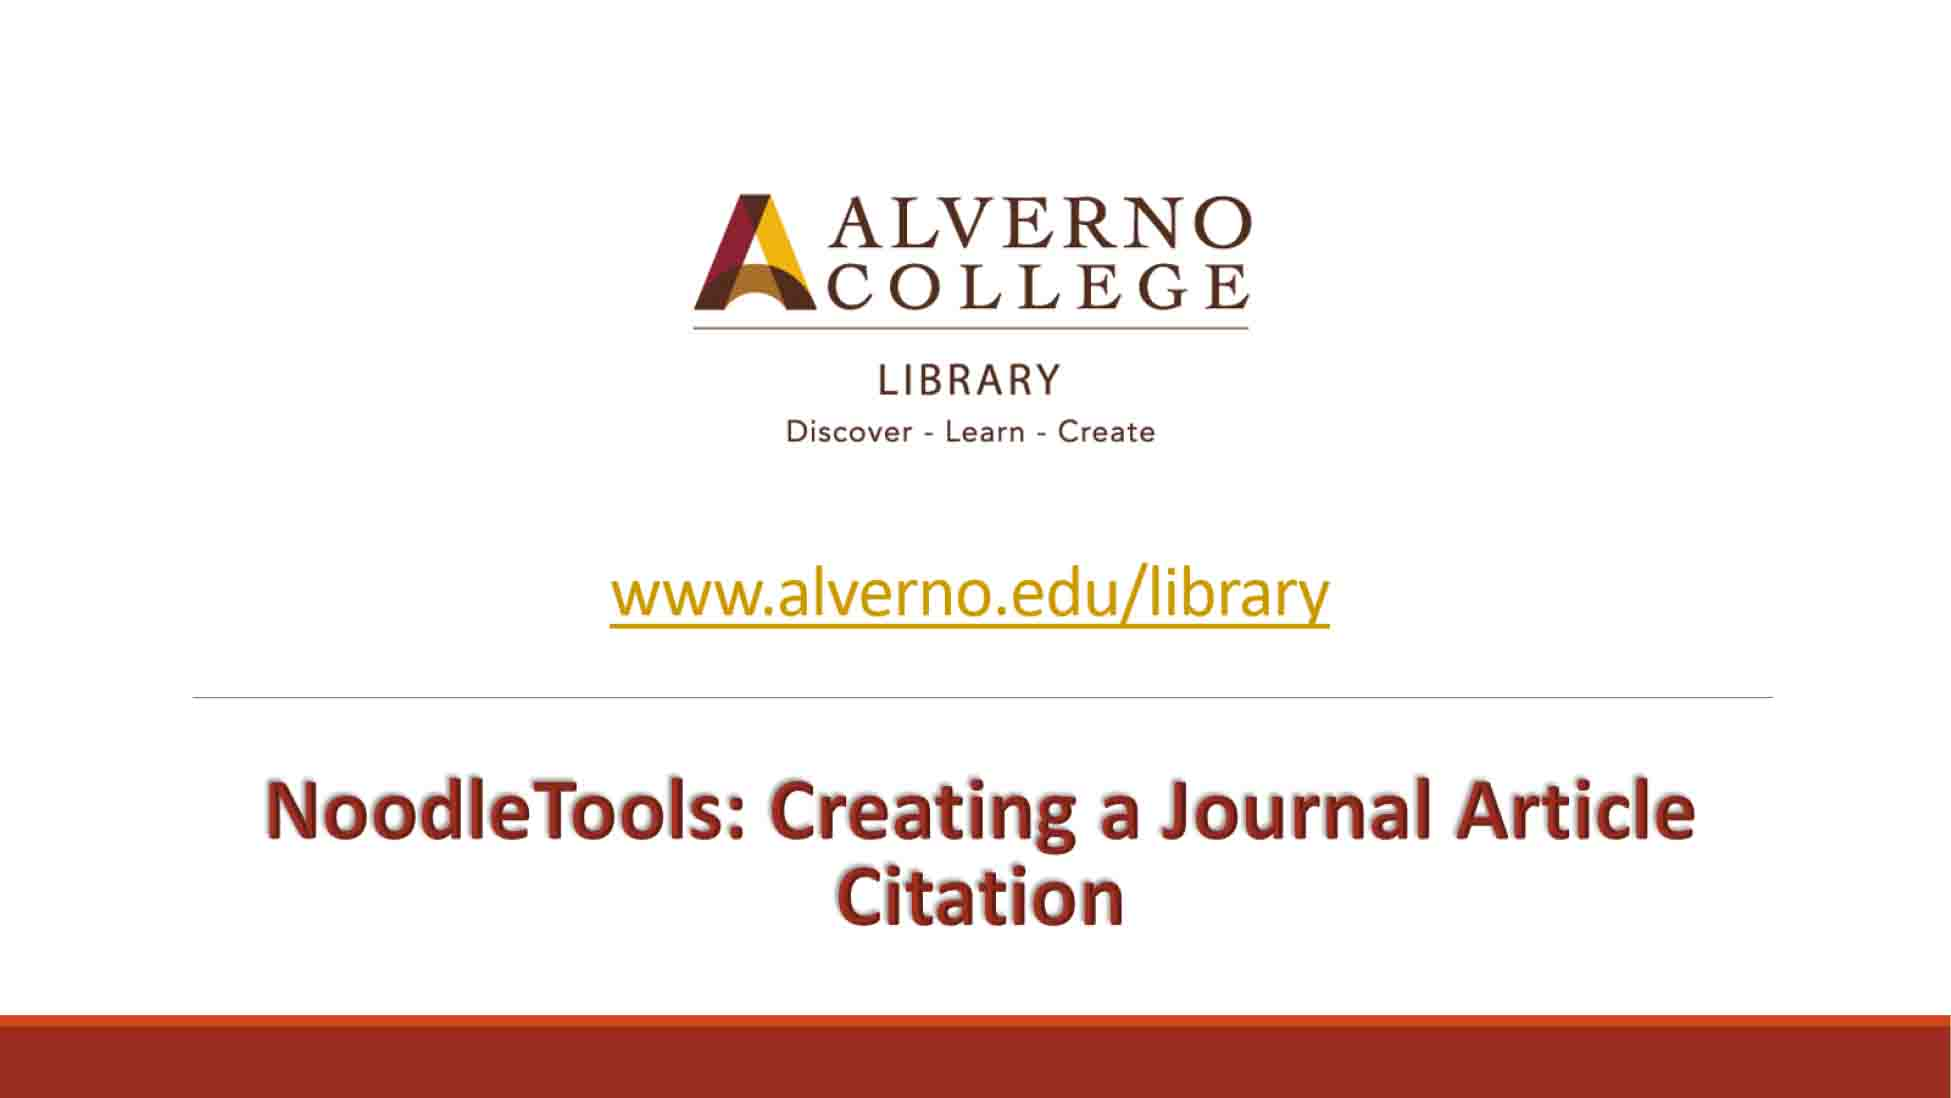 NoodleTools: Journal article citation video